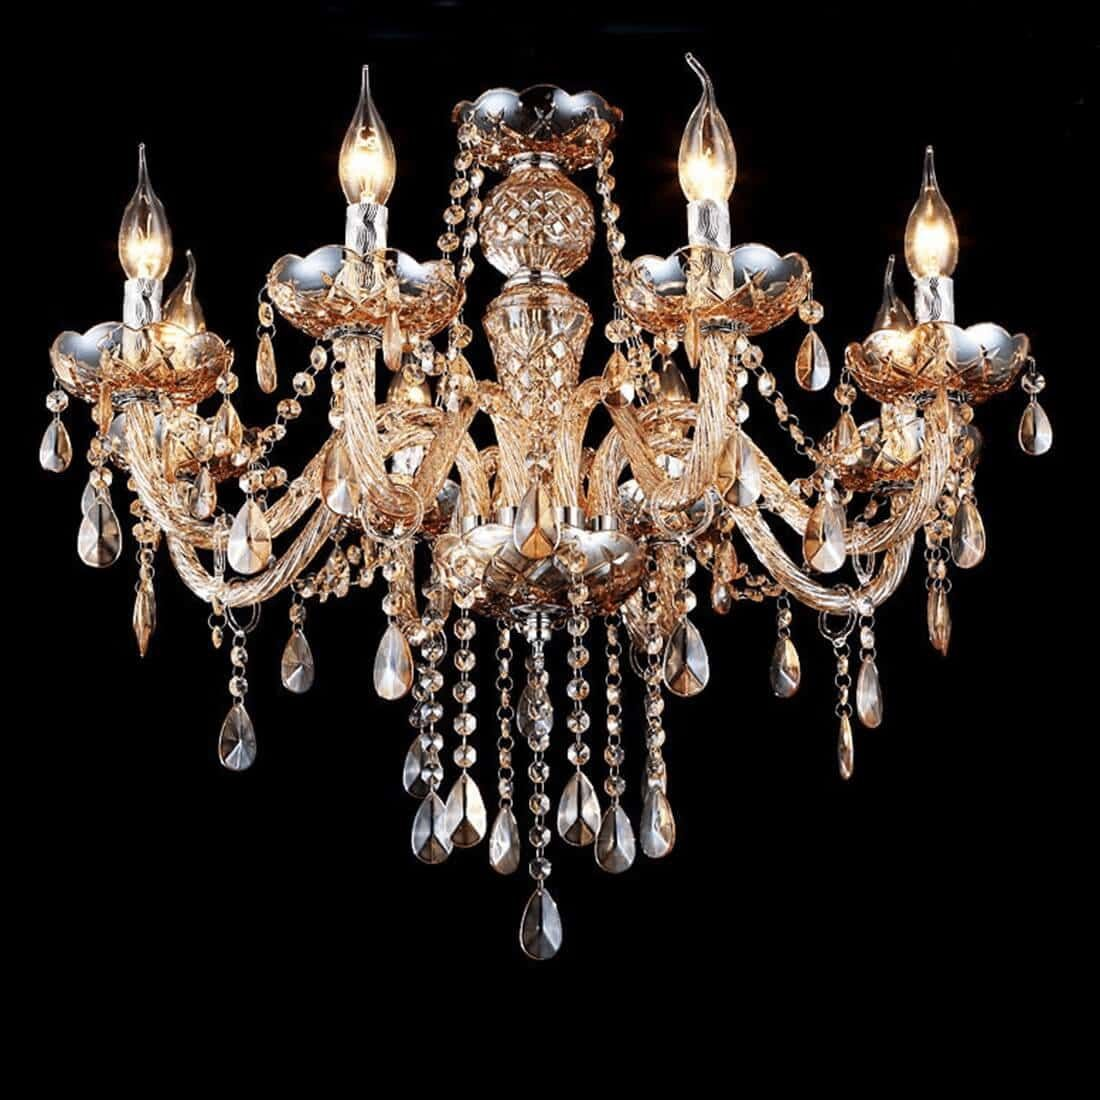 modern-crystal-candle-chandelier